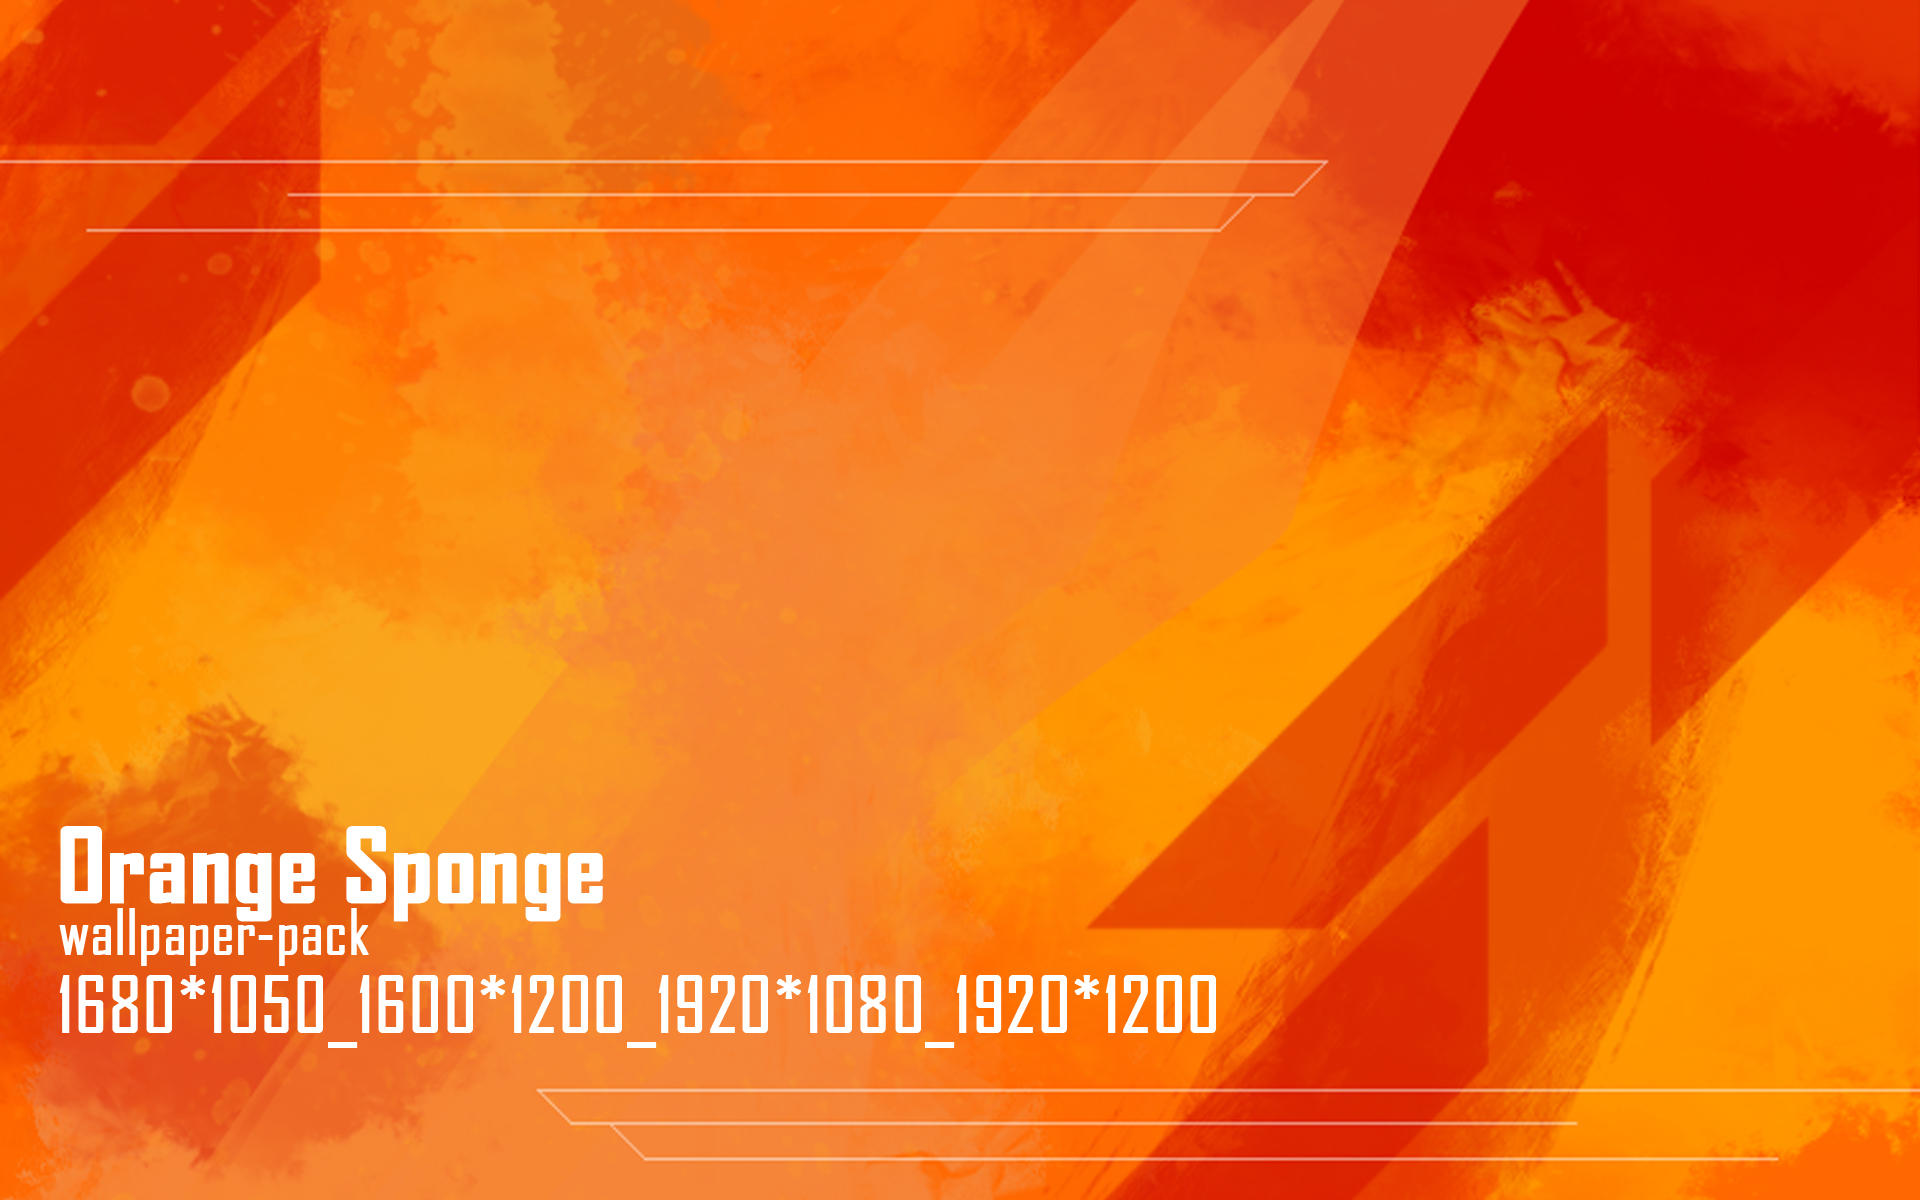 orange sponge wallpaper pack by terrencephil d3fs9xu Wallpaper pack 9